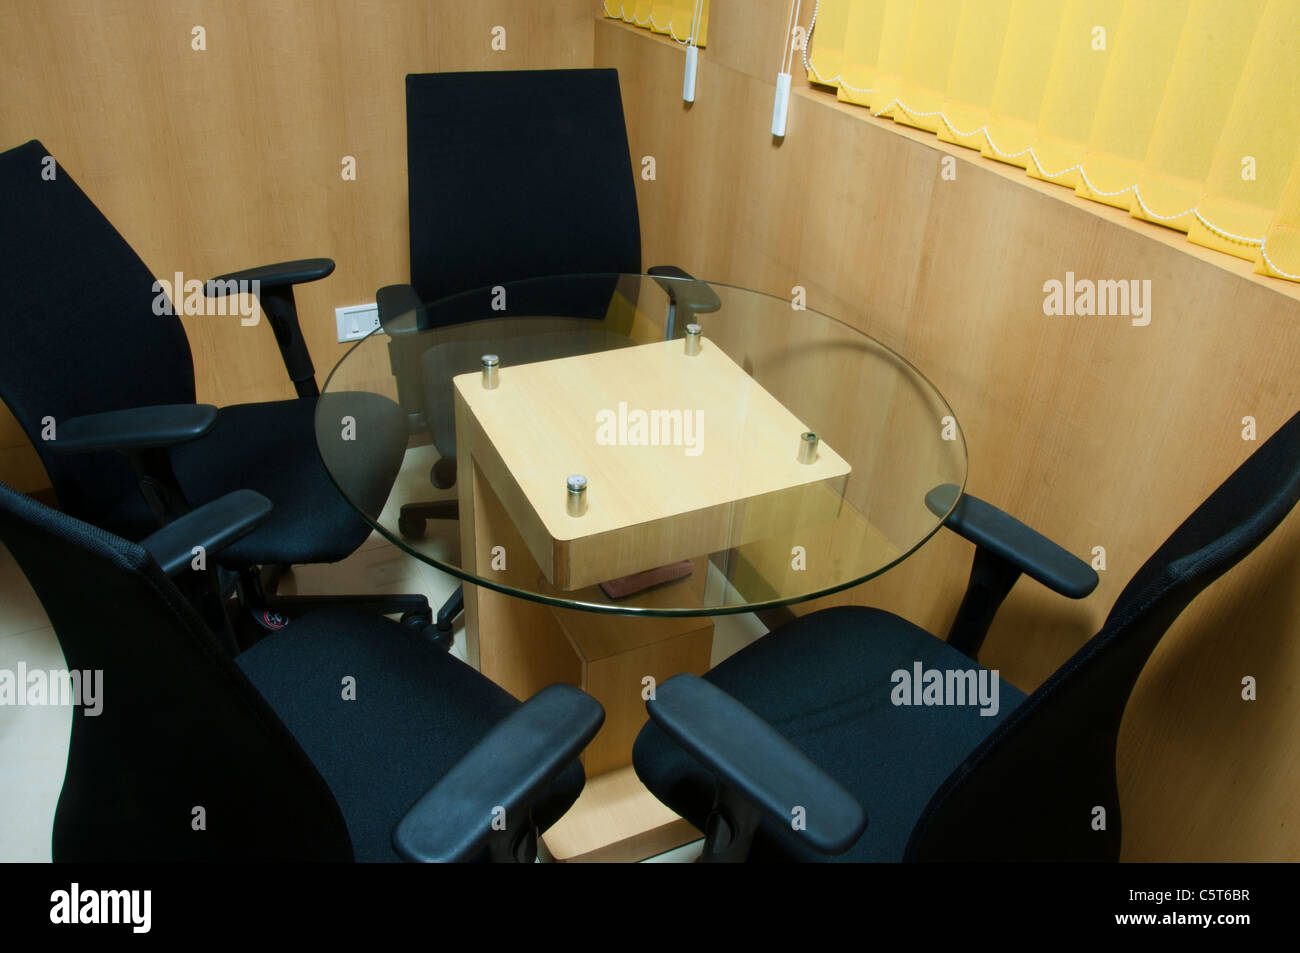 Meeting room with 4 chairs - Stock Image